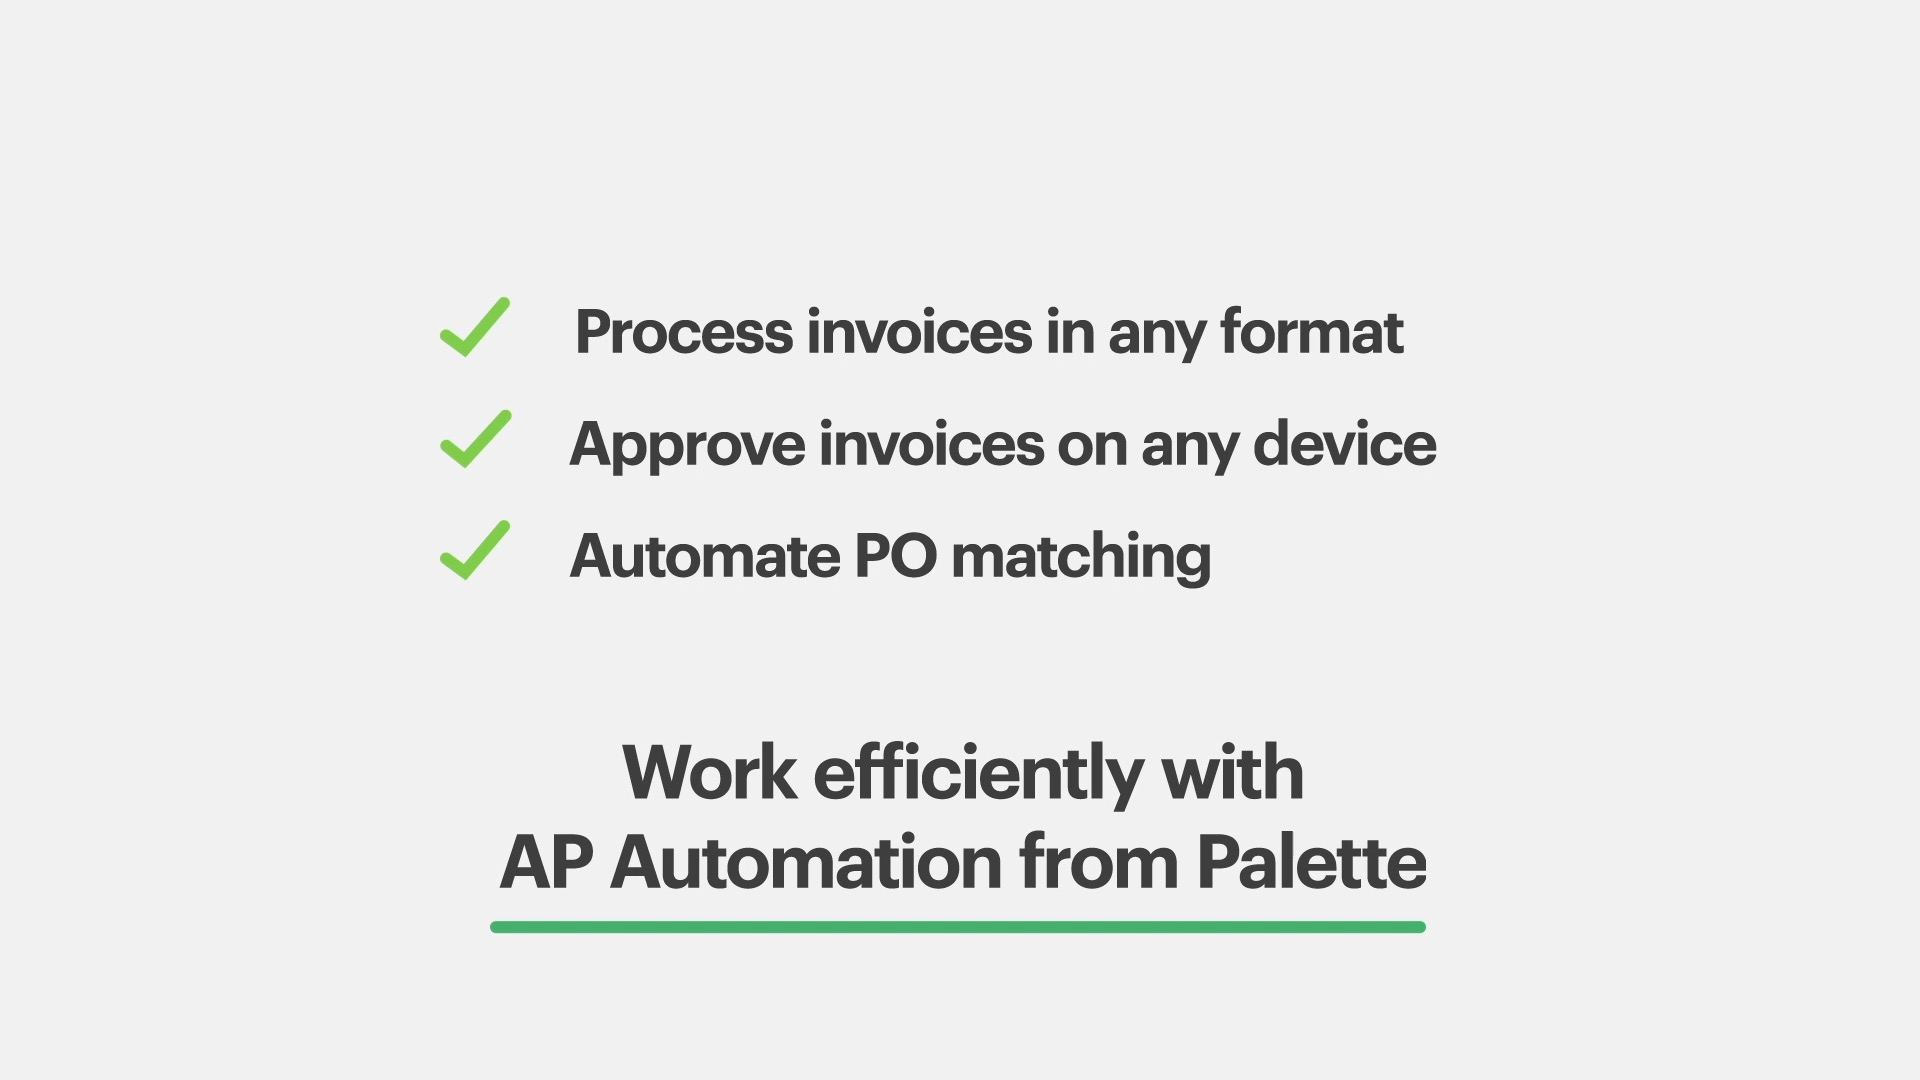 Approve invoices and automate the PO matching process.